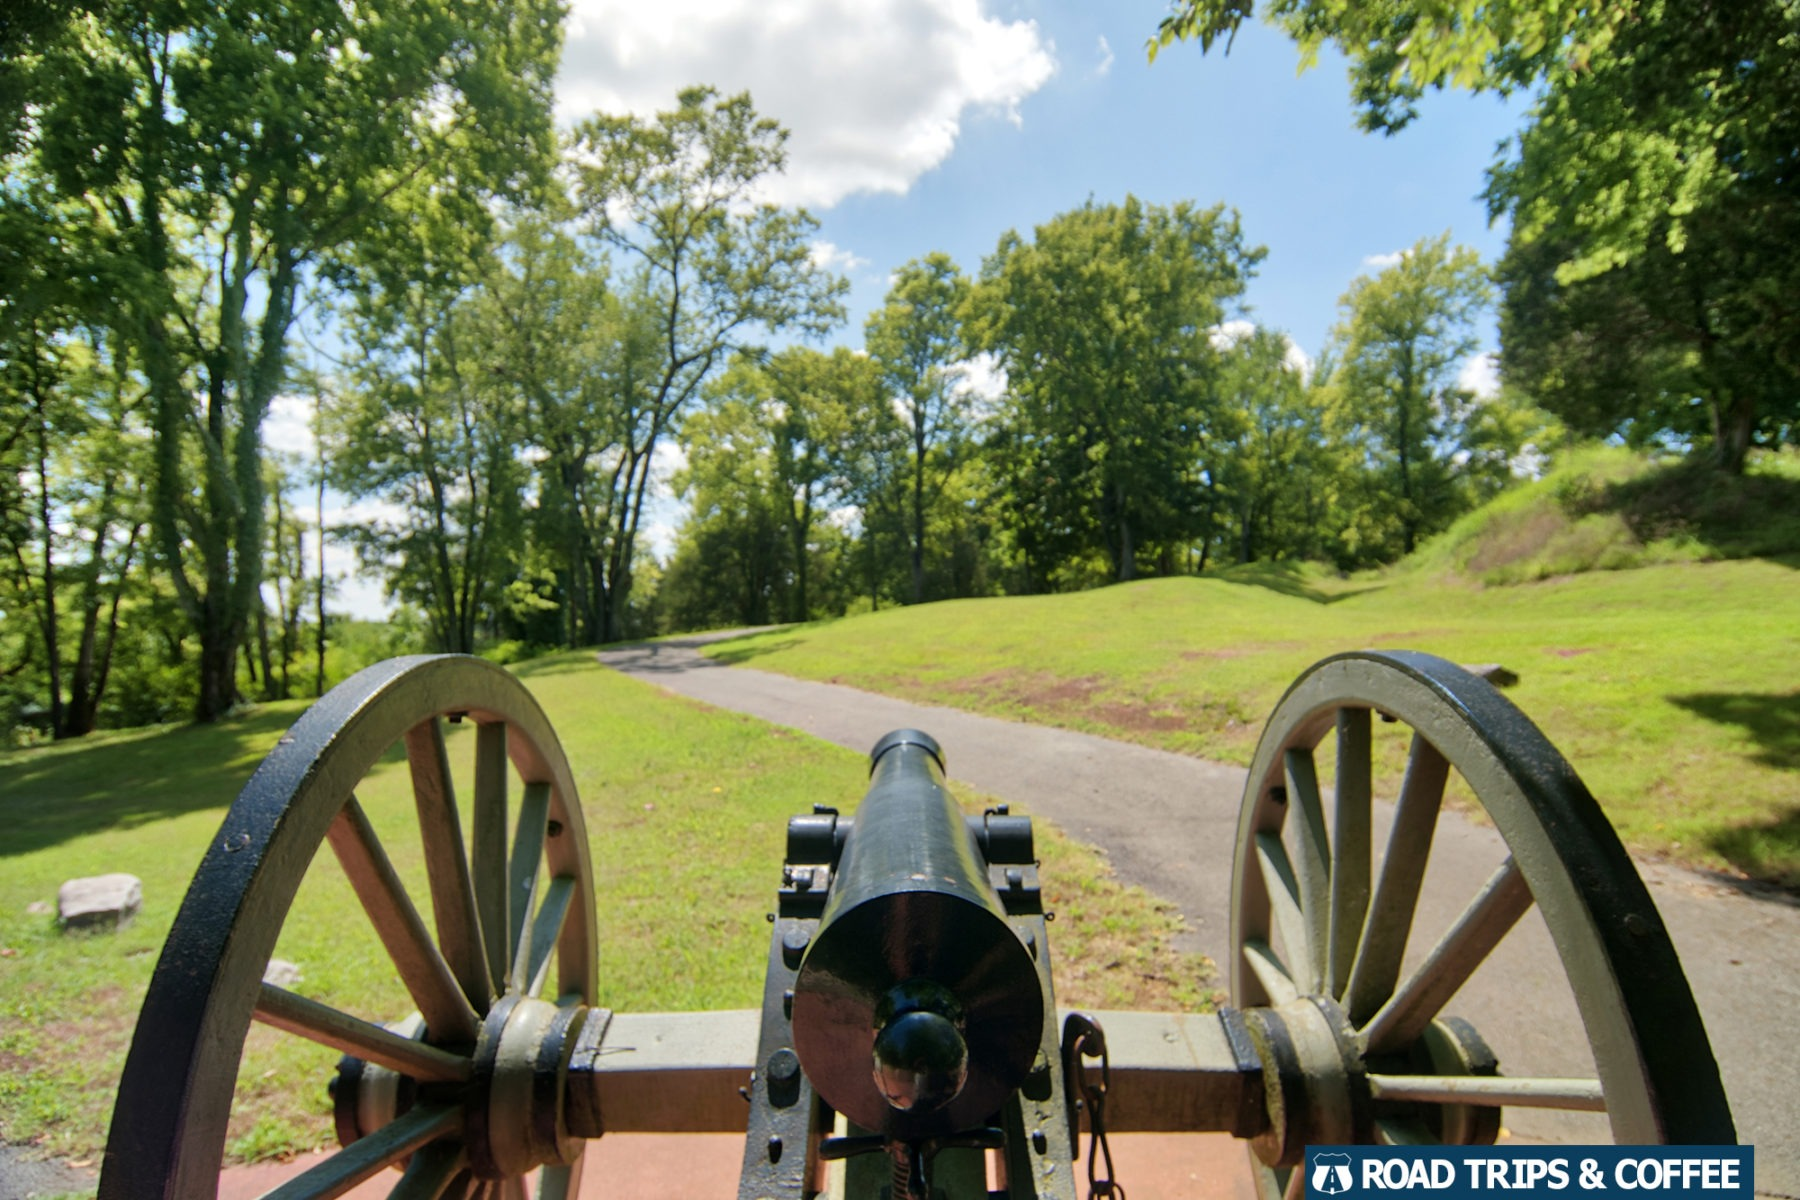 A Civil War-era canon beside a hiking trail at Fort Defiance Civil War Park in Clarksville, Tennessee